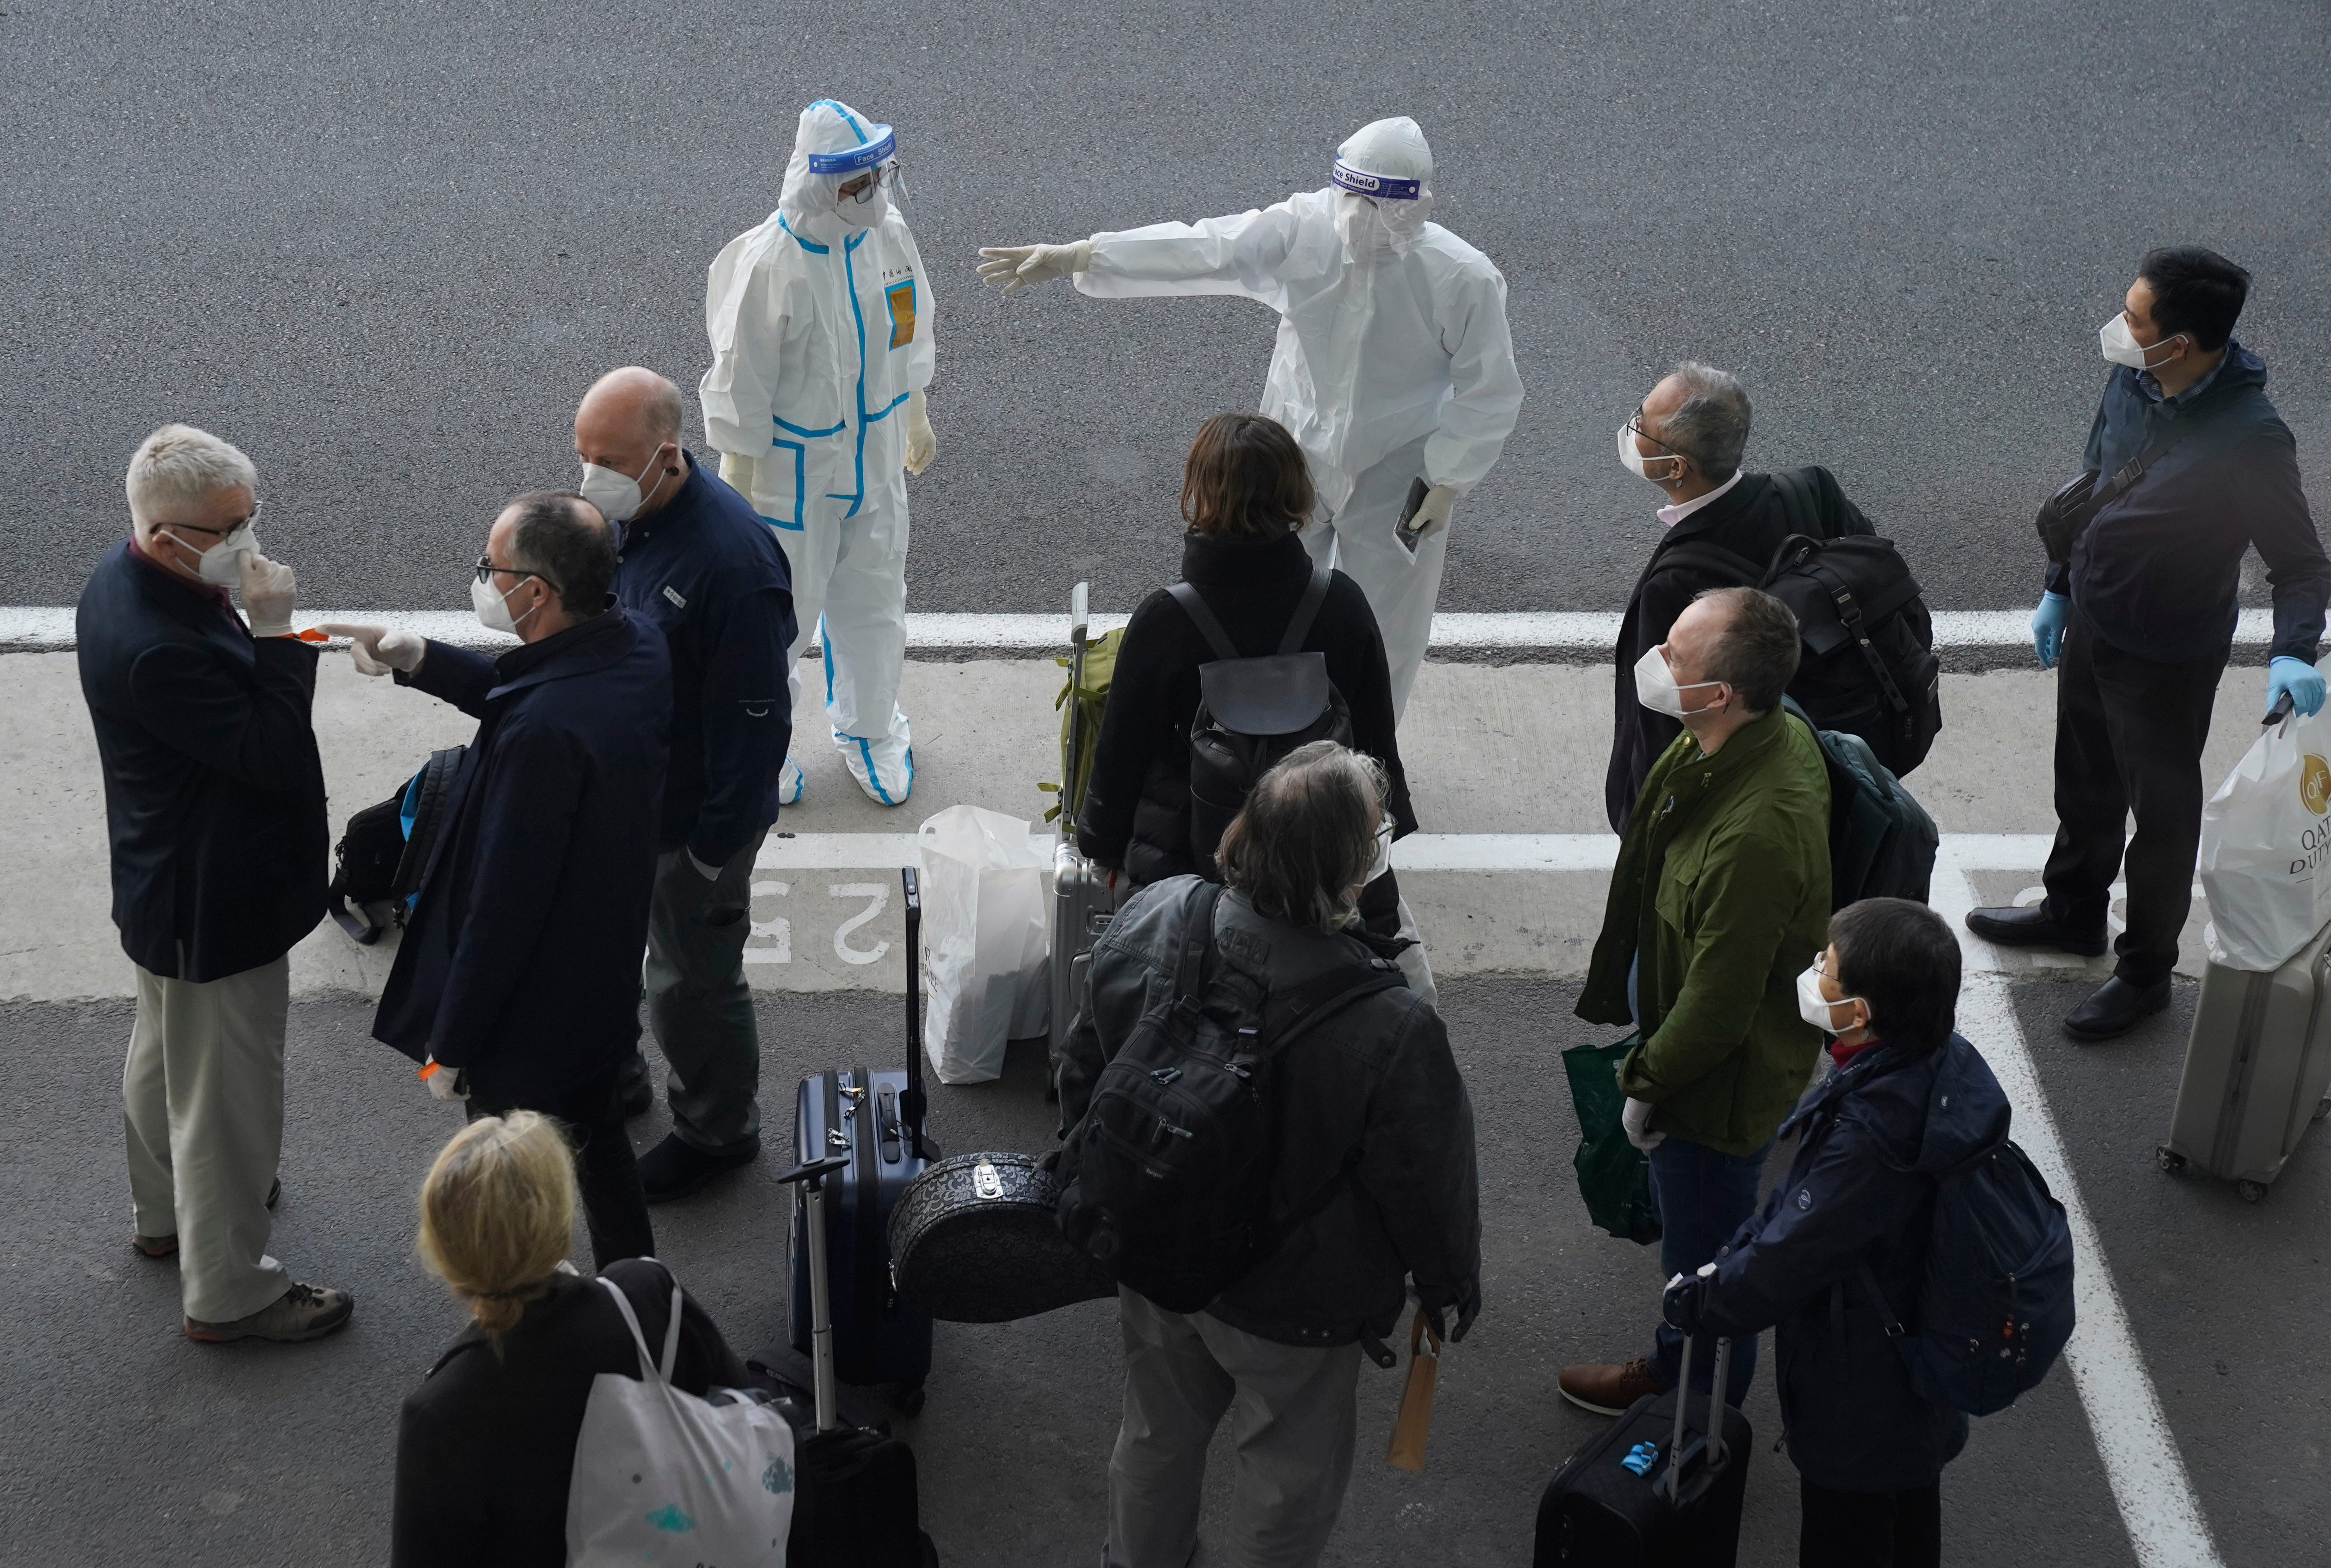 A worker in protective gear directs members of the World Health Organization after their arrival at the airport in Wuhan in central China's Hubei province on Jan. 14. A global team of researchers came to the city where the coronavirus was first detected to investigate its origins amid uncertainty about whether Beijing might try to prevent embarrassing discoveries.